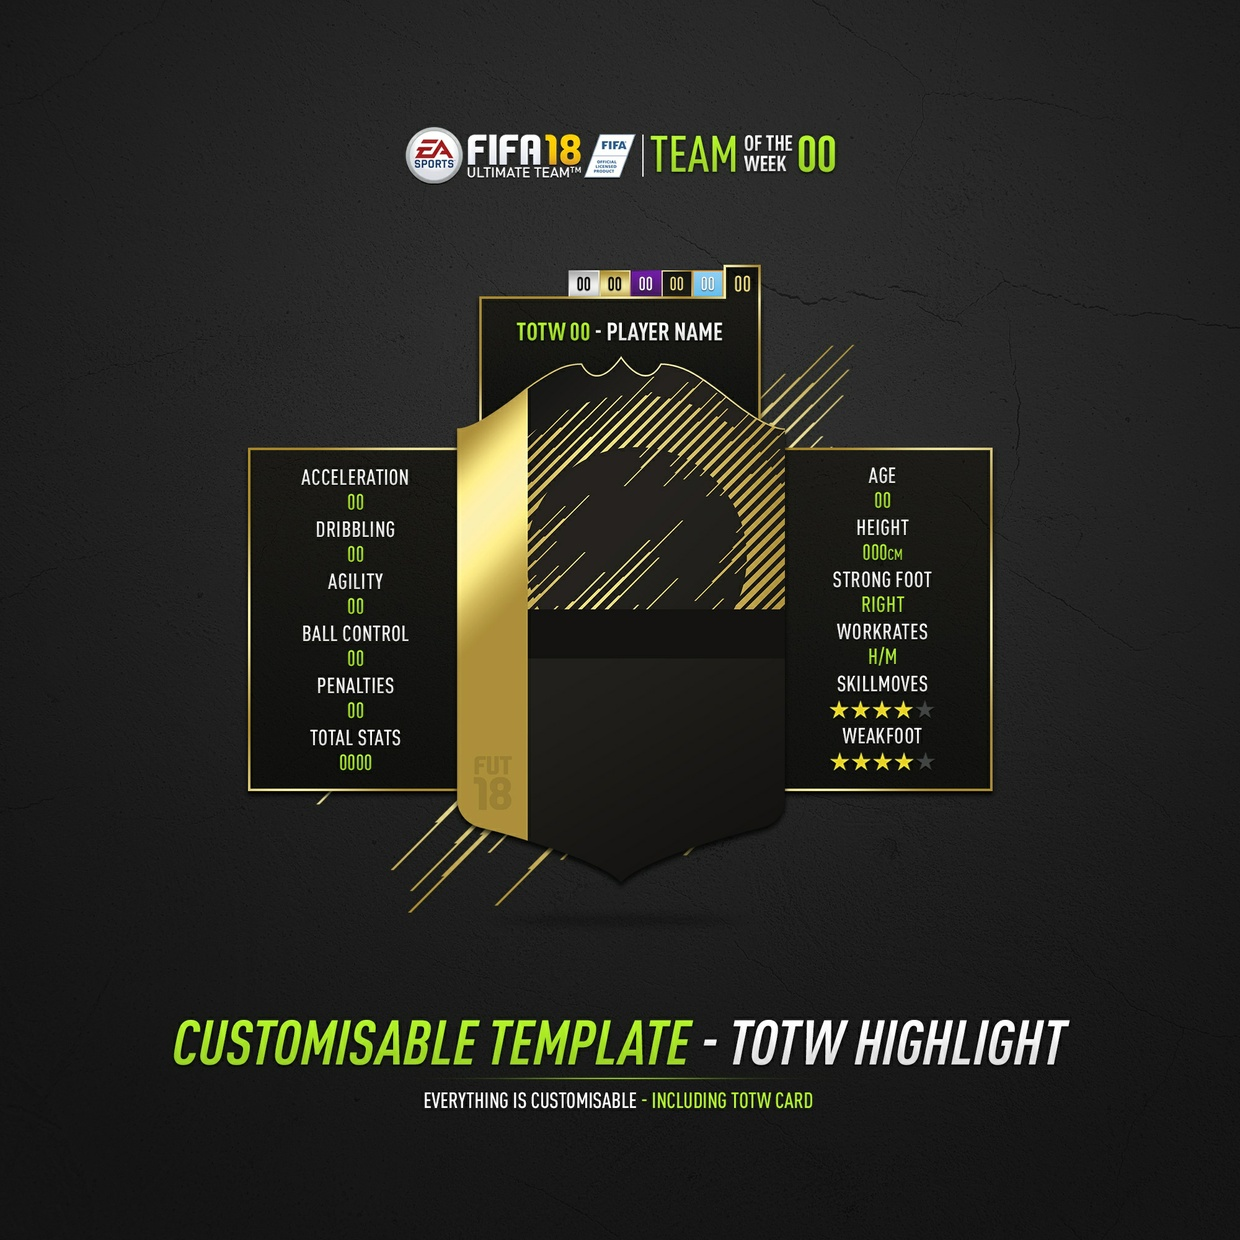 FIFA 18 Customisable TOTW Highlight Template (Photoshop)